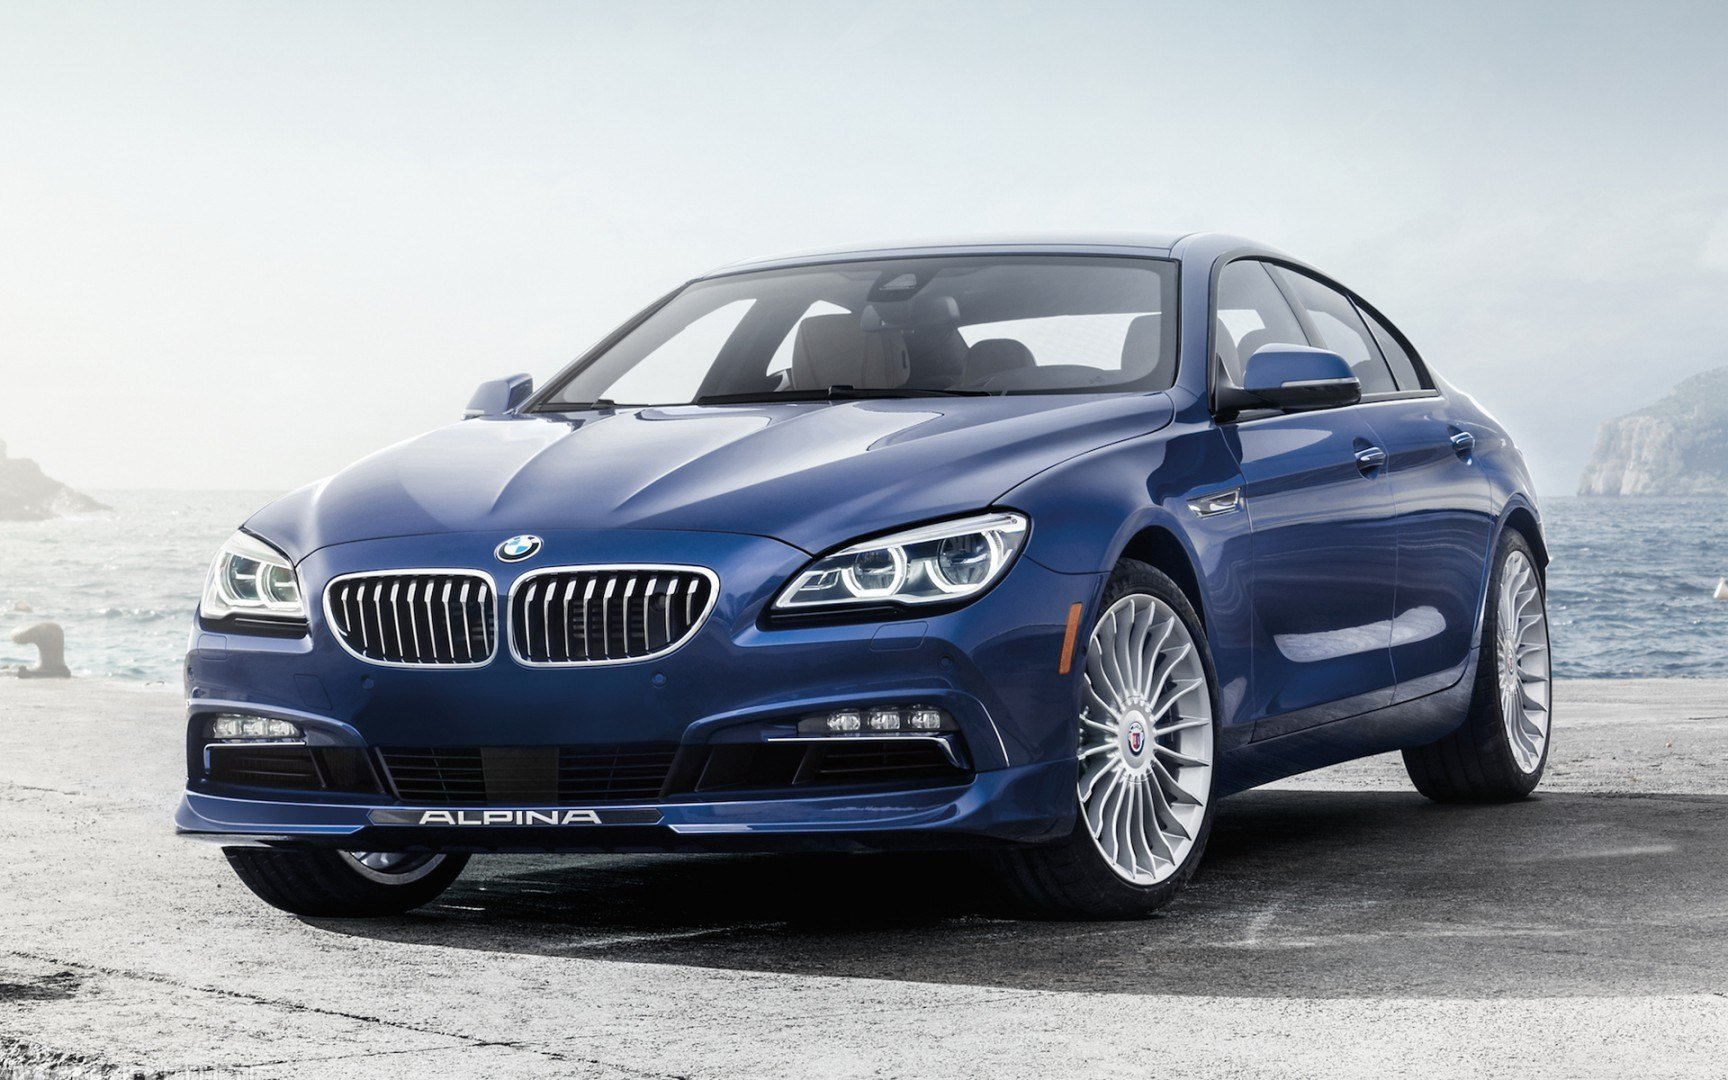 Latest 2016 Alpina Bmw B6 Xdrive Gran Coupe Car Hd Wallpaper Free Download